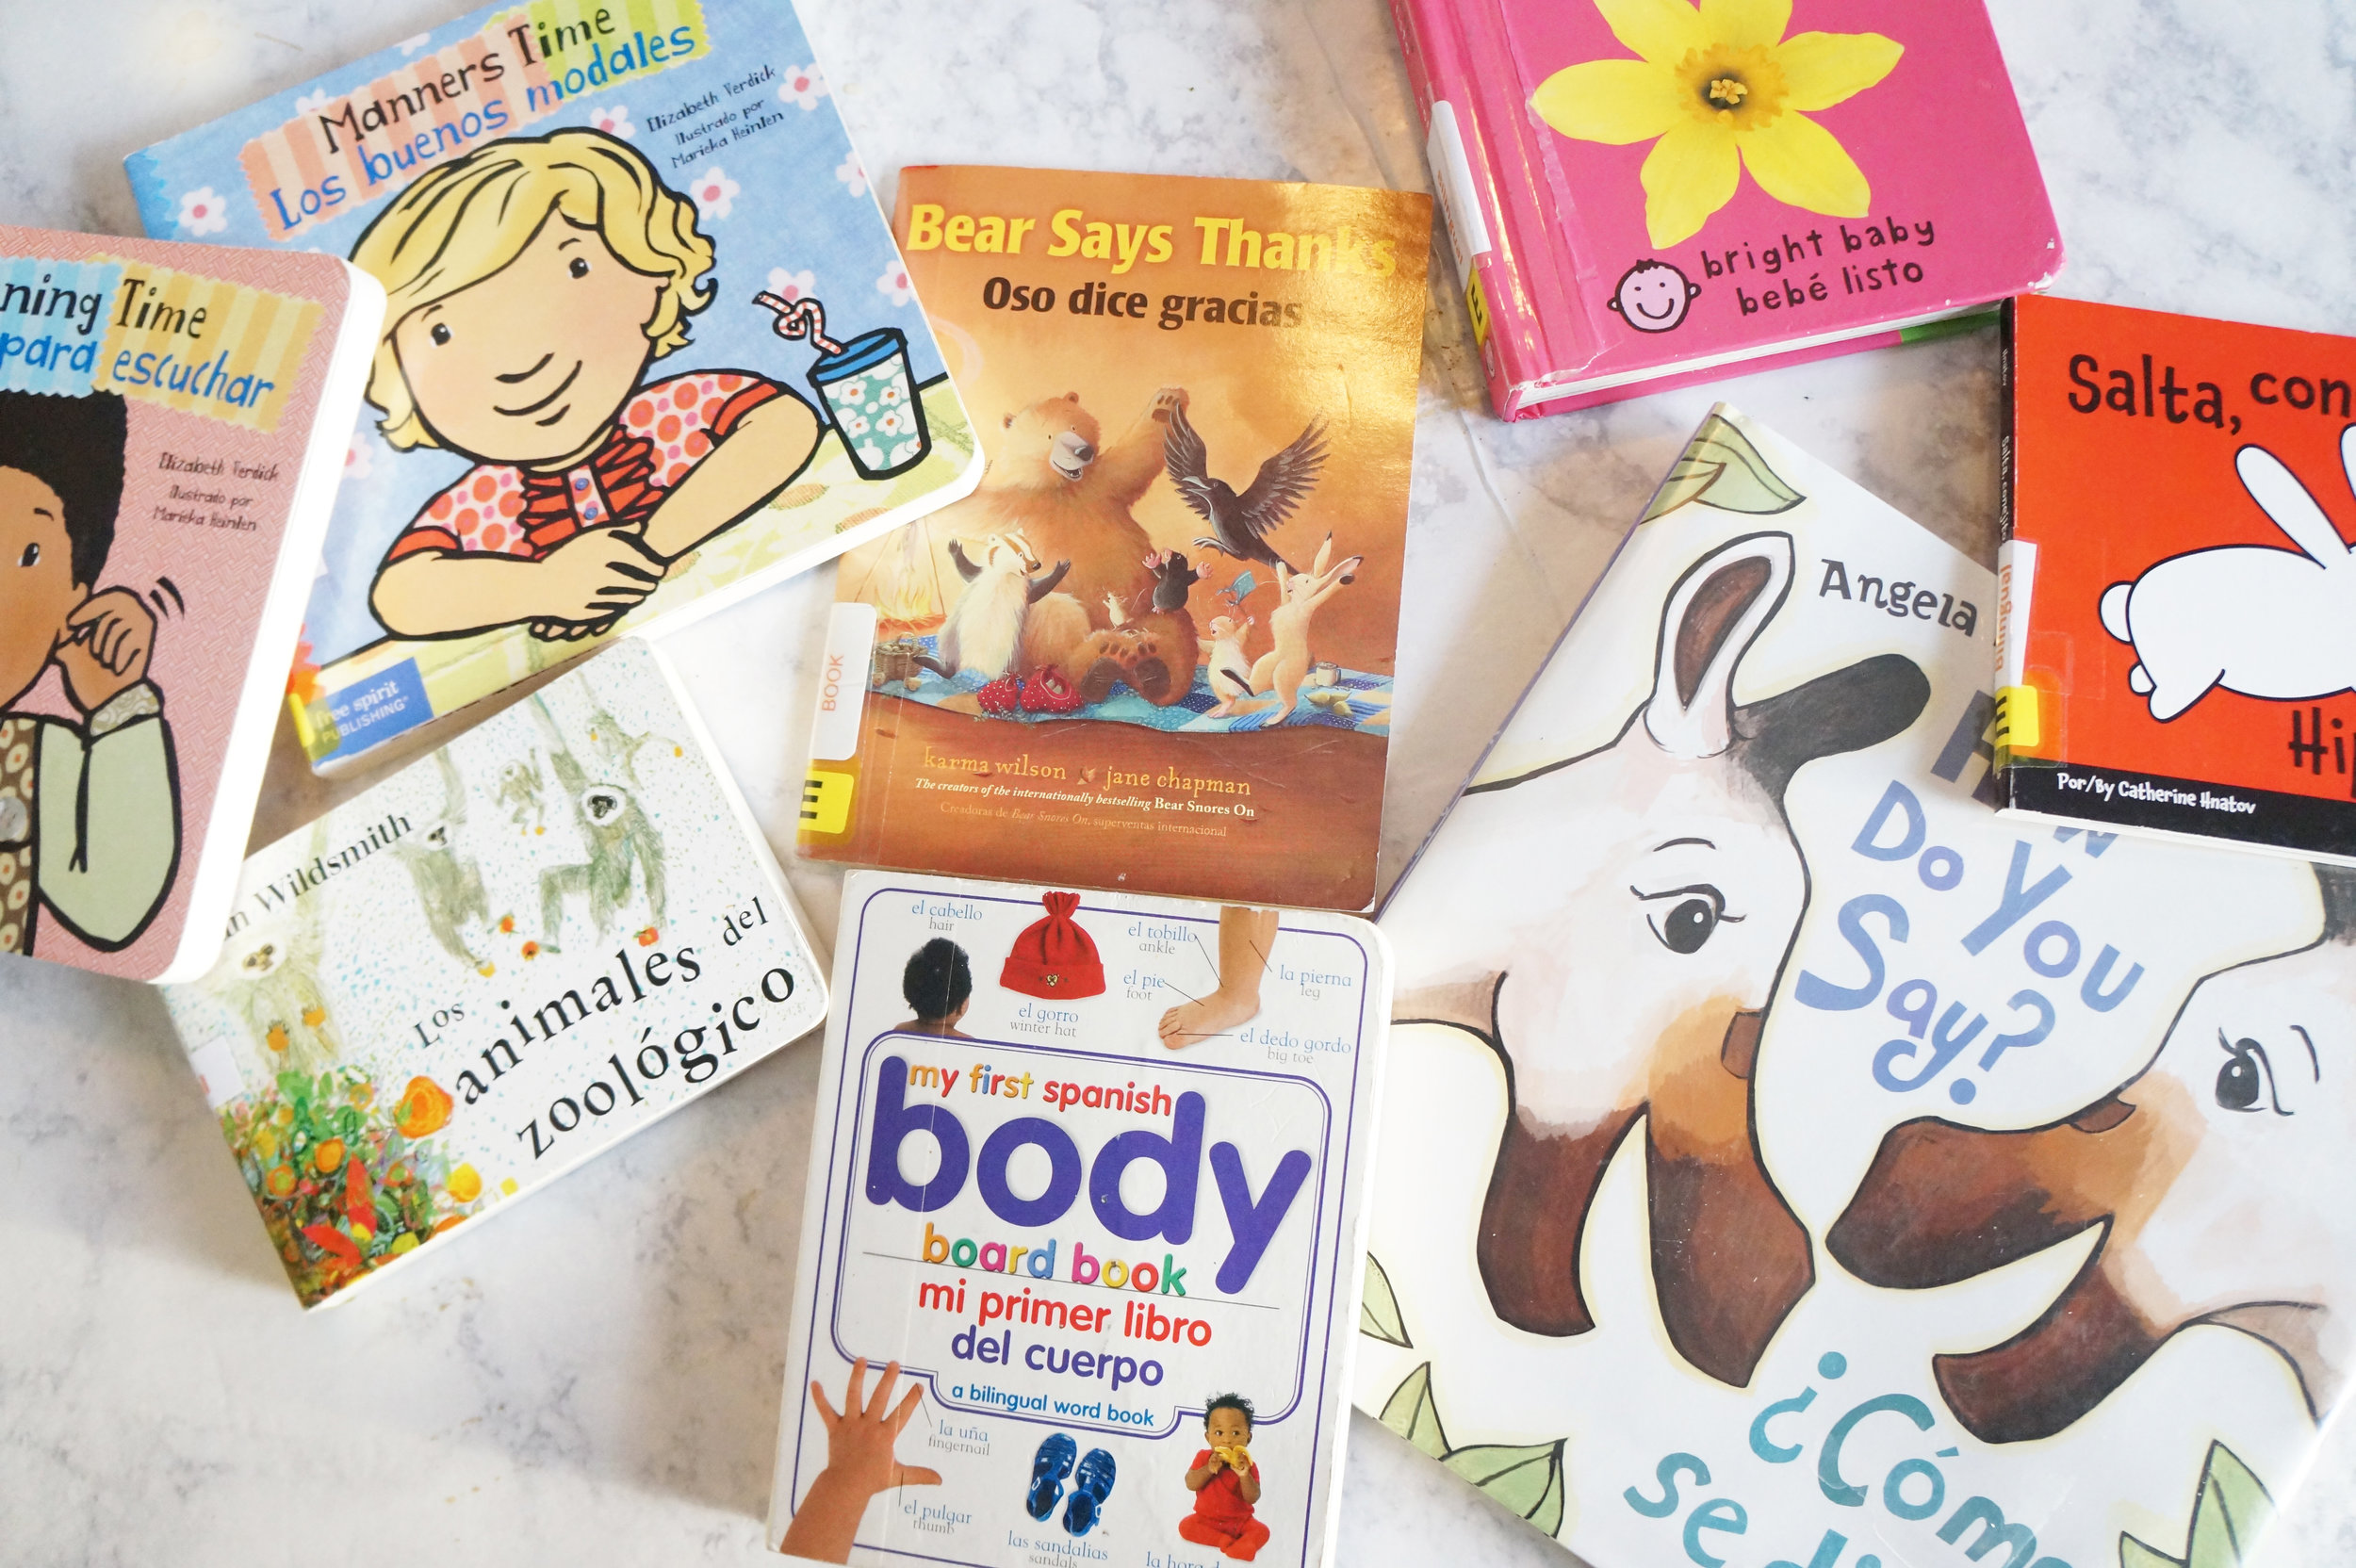 Andrea Fenise Memphis Fashion Blogger shares how she began to learn spanish by reading children's bilingual books